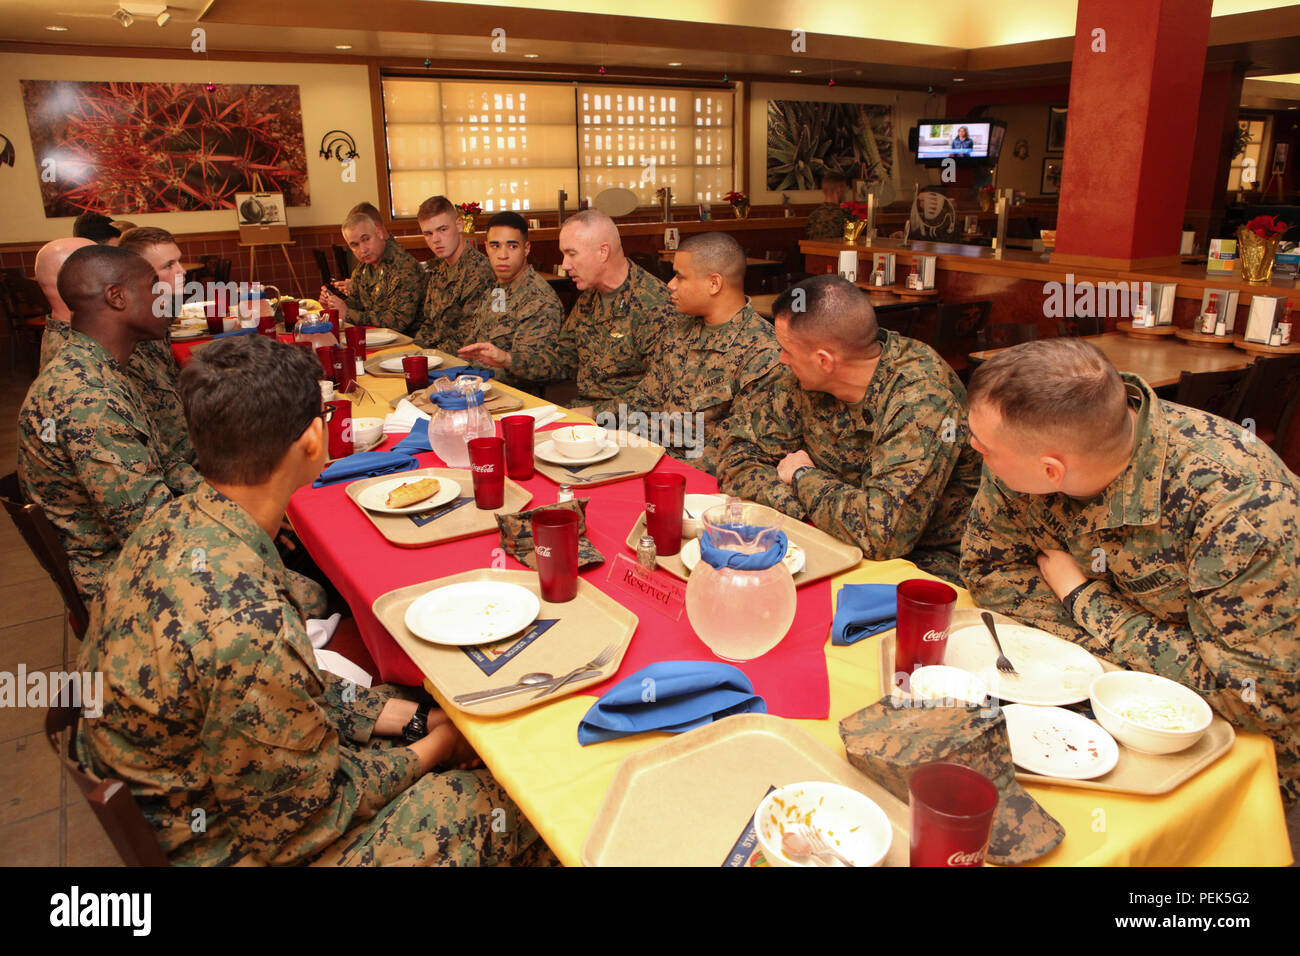 U.S. Marine Corps Installations Command (MCICOM), MajGen. Charles Hudson and SgtMaj. Anthony Cruz has lunch with the Marines stationed aboard Marine Corps Air Station (MCAS) Yuma, Ariz., at Dec. 10, 2015. MajGen. Hudson and SgtMaj. Cruz socializes and mentors the Marines of the current generation. (U.S. Marine Corps photo taken by LCpl. AaronJames B. Vinculado/Released) - Stock Image